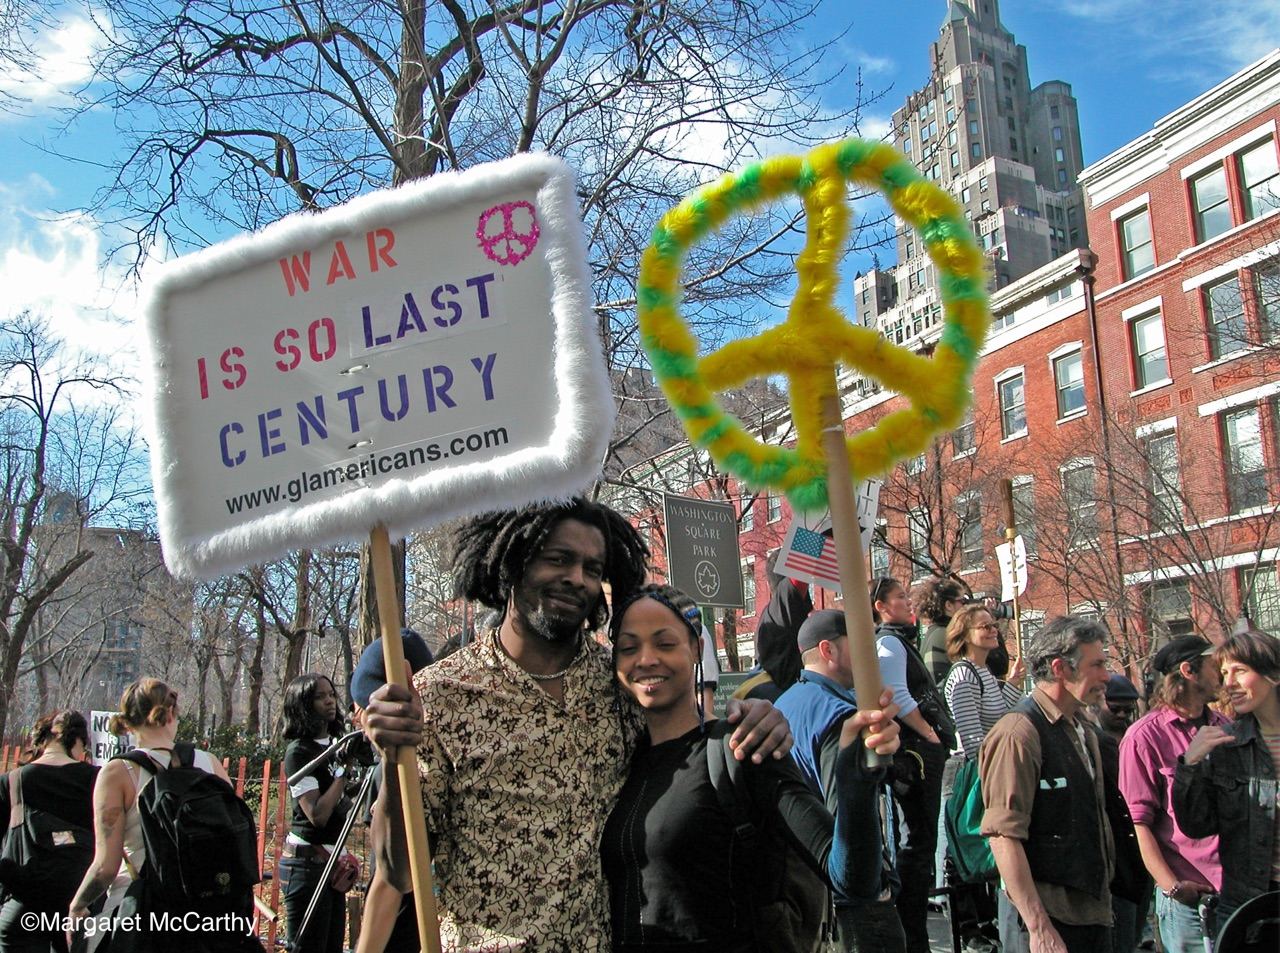 War Is So Last Centruy, Glamericans March & Rally to Protest U.S. Invasion of Iraq, NYC 03/22/2003